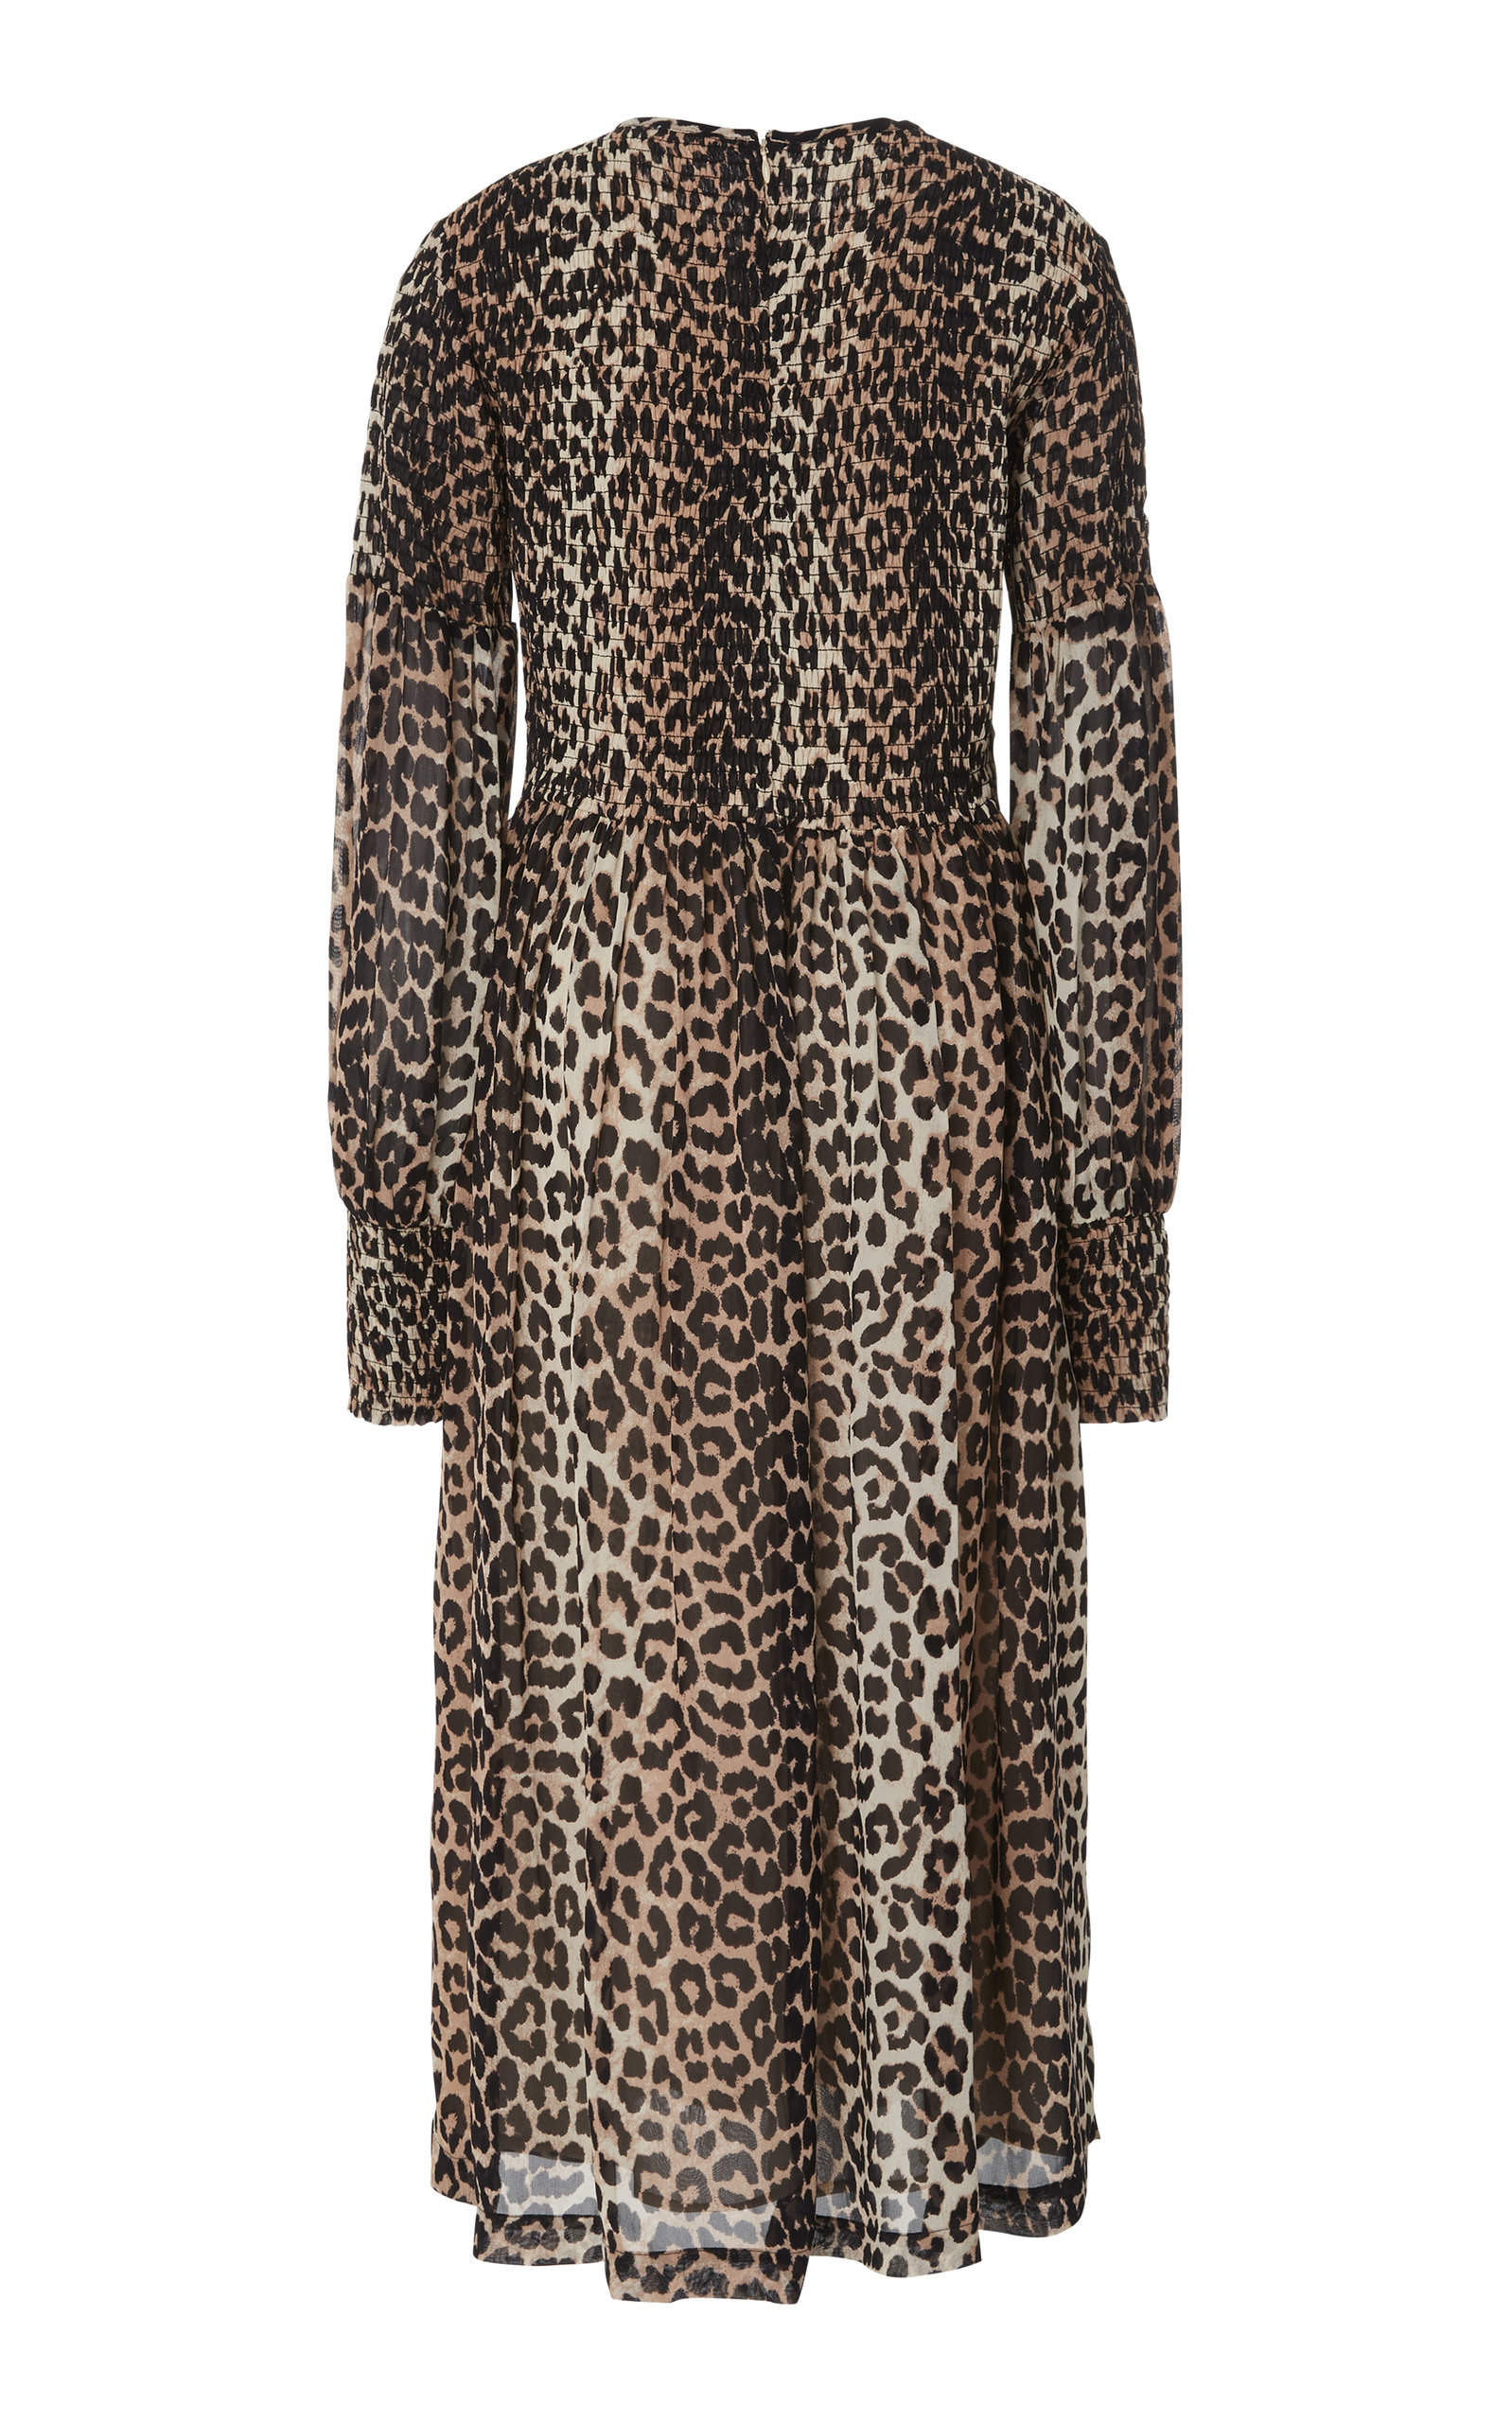 6c7a3691 GanniSmocked Leopard-Print Georgette Dress. CLOSE. Loading. Loading